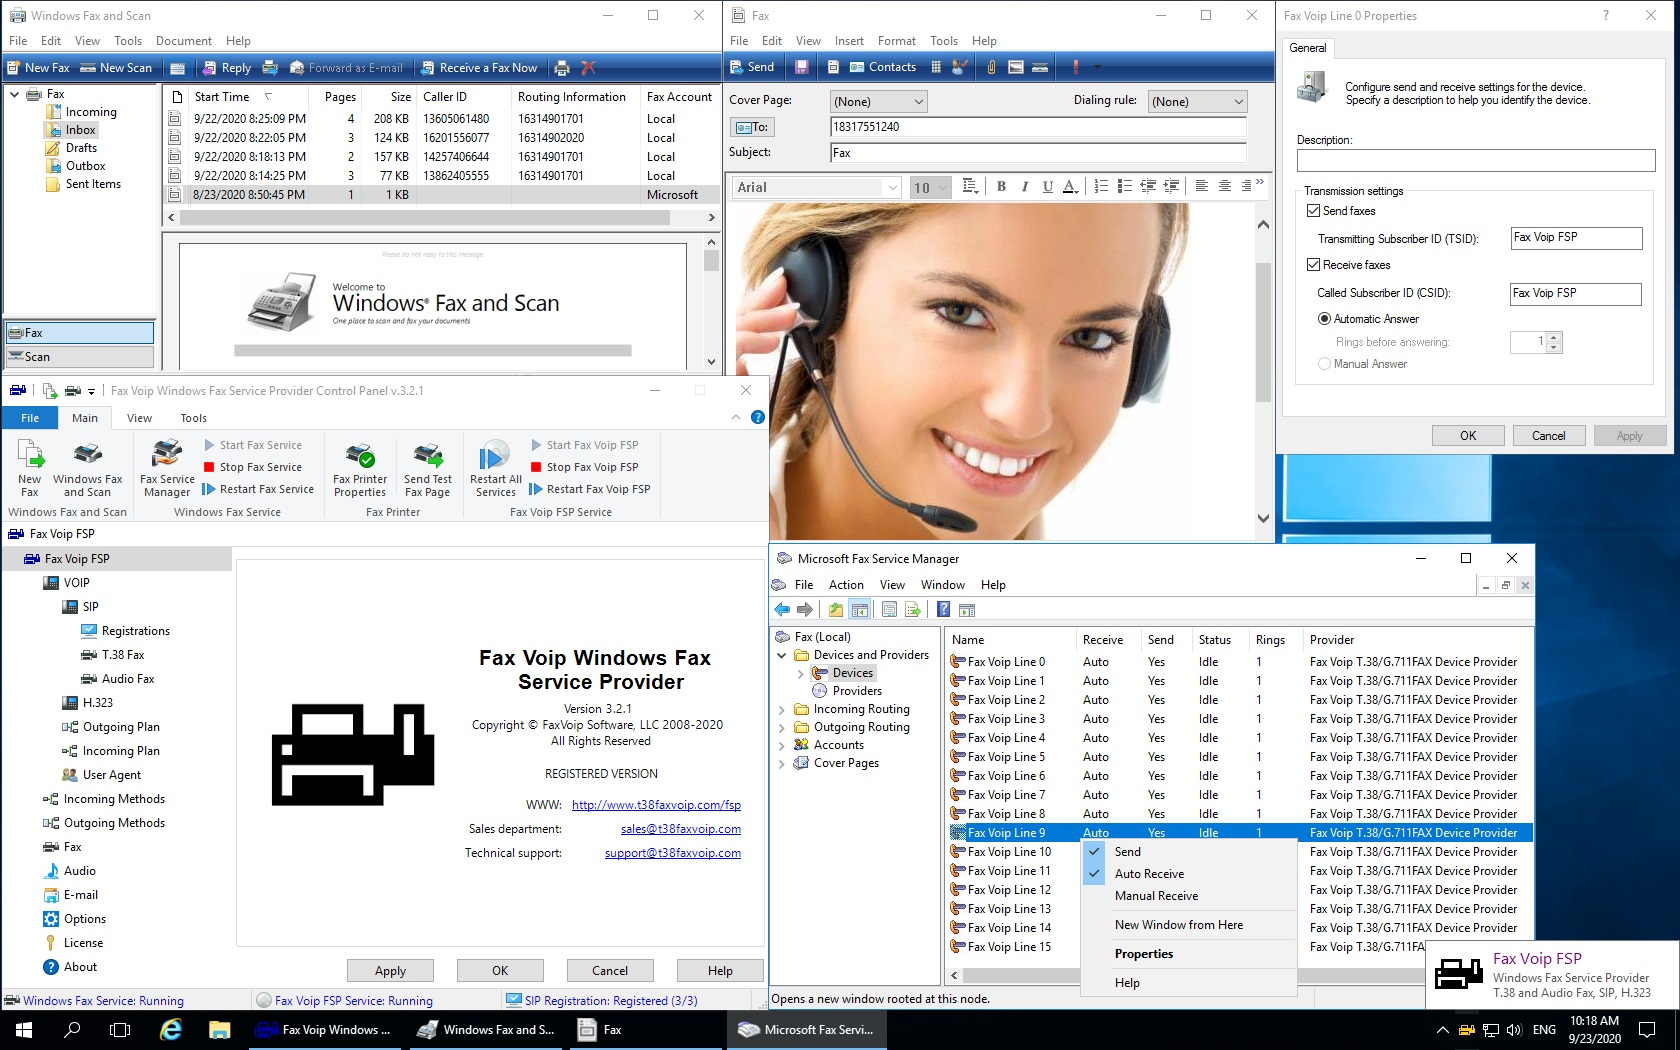 Enables Microsoft Fax and Windows Fax and Scan, which are built right into Windows, to send and receive T.38 and audio (over G.711 codec) faxes using VoIP (SIP or H.323). Mail to Fax. Routing Extension: E-mail, Store in folder, Print, Custom.